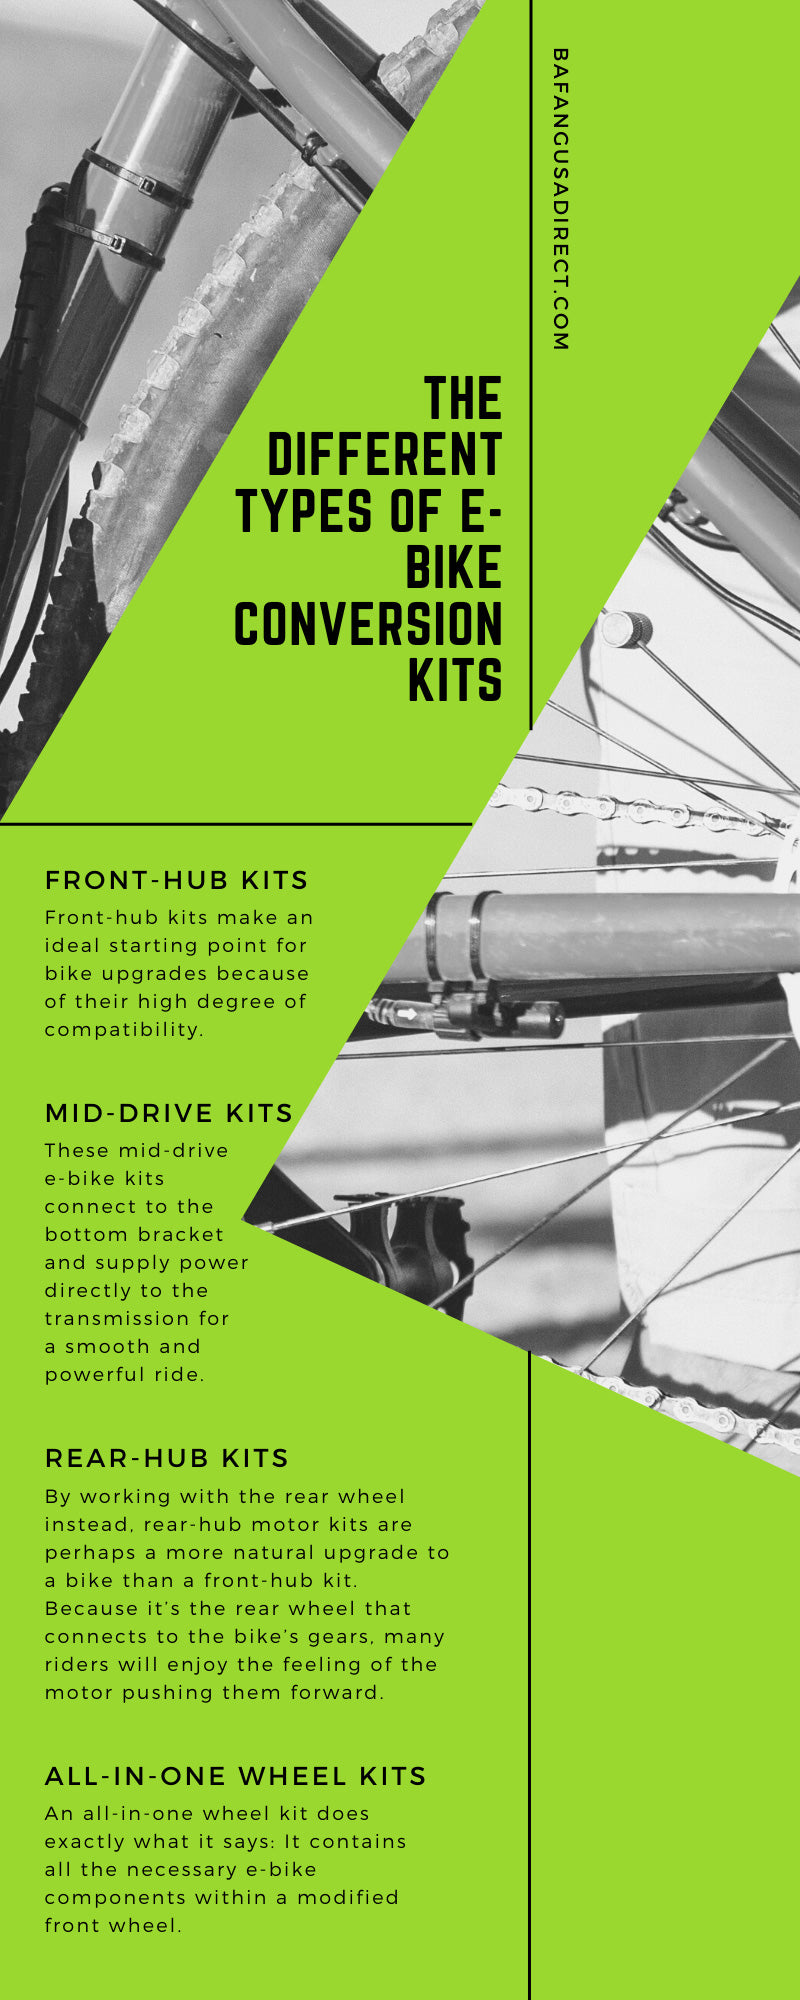 The Different Types of E-Bike Conversion Kits